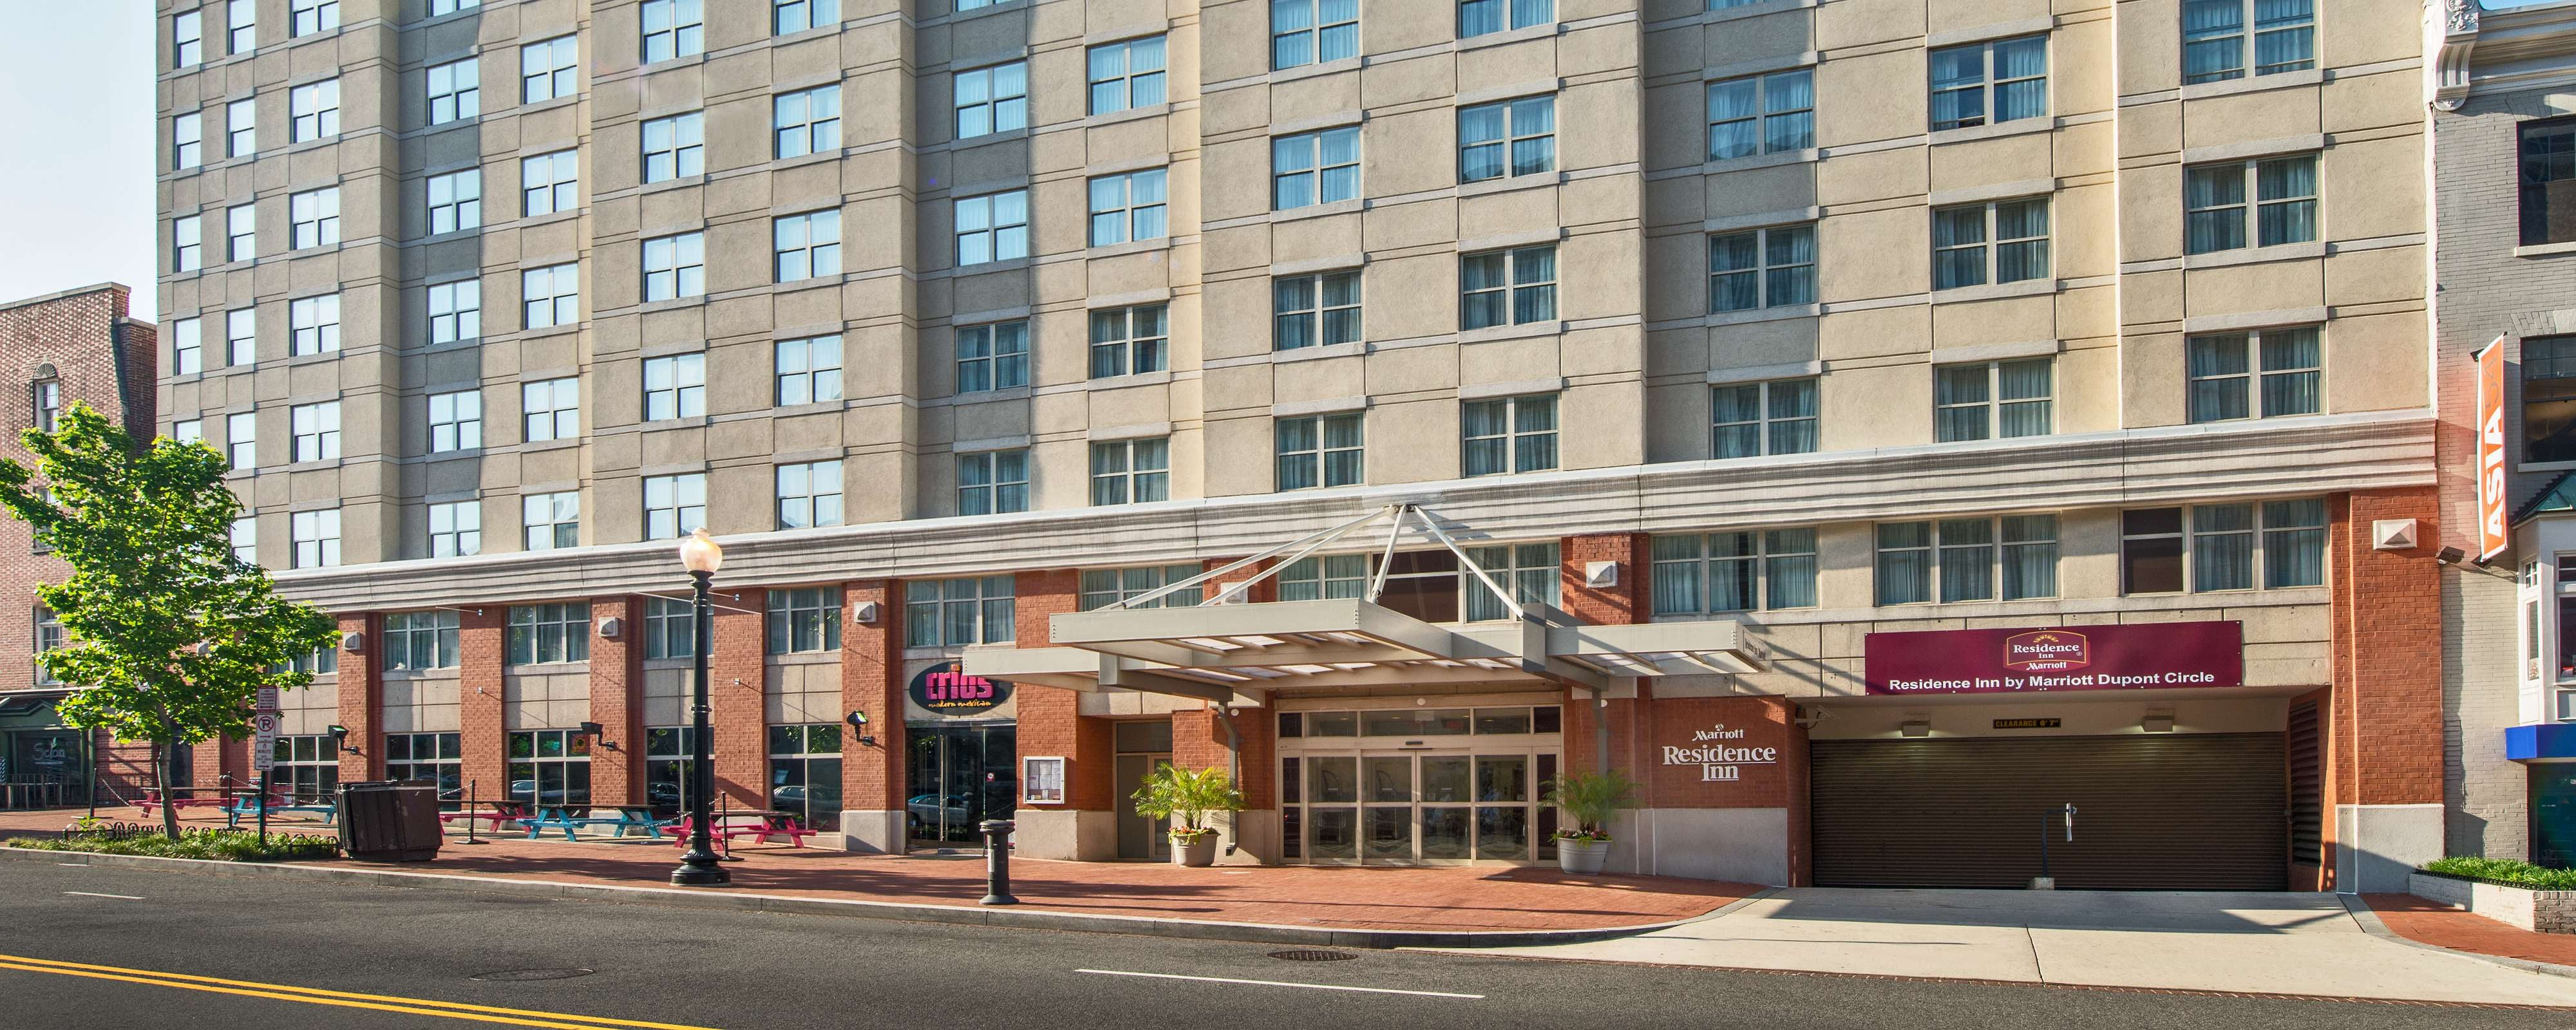 Residence Inn Washington D.C.